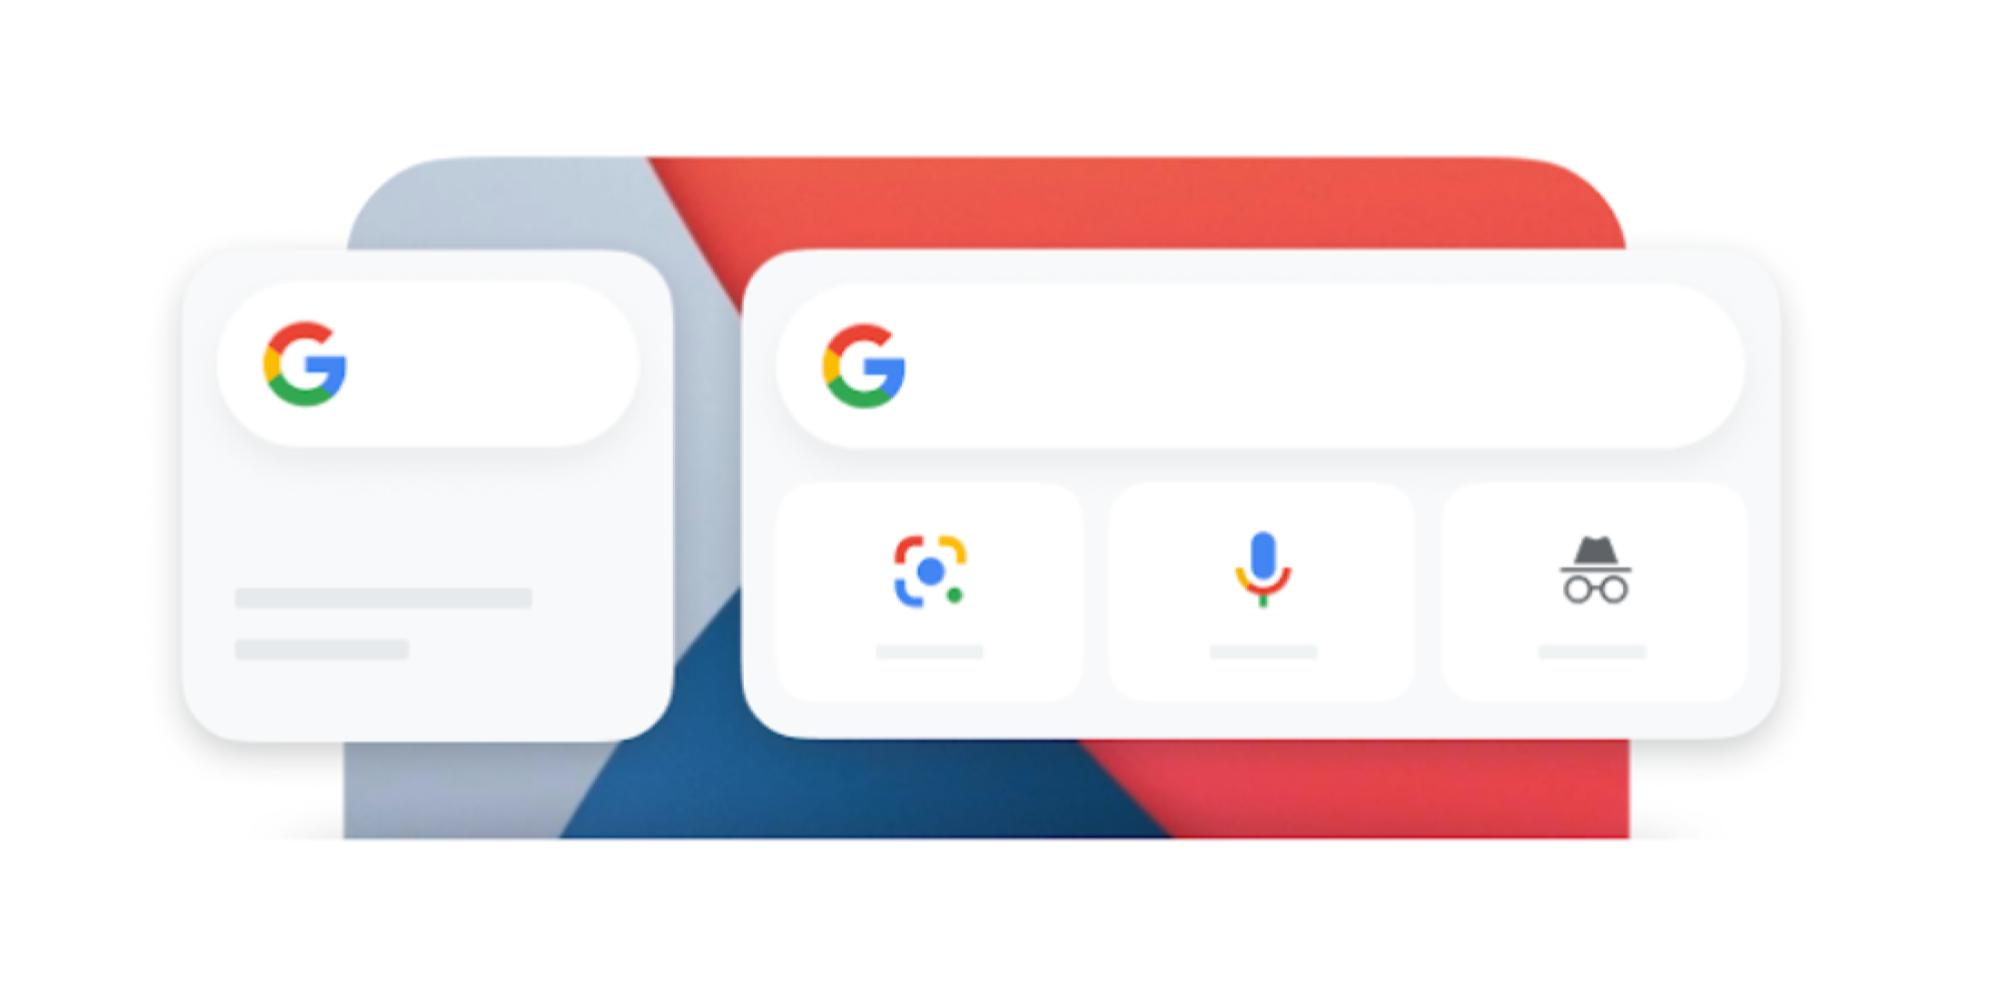 Google adds iOS 14 Search widget as Chrome and Gmail getting default apps support – 9to5Google